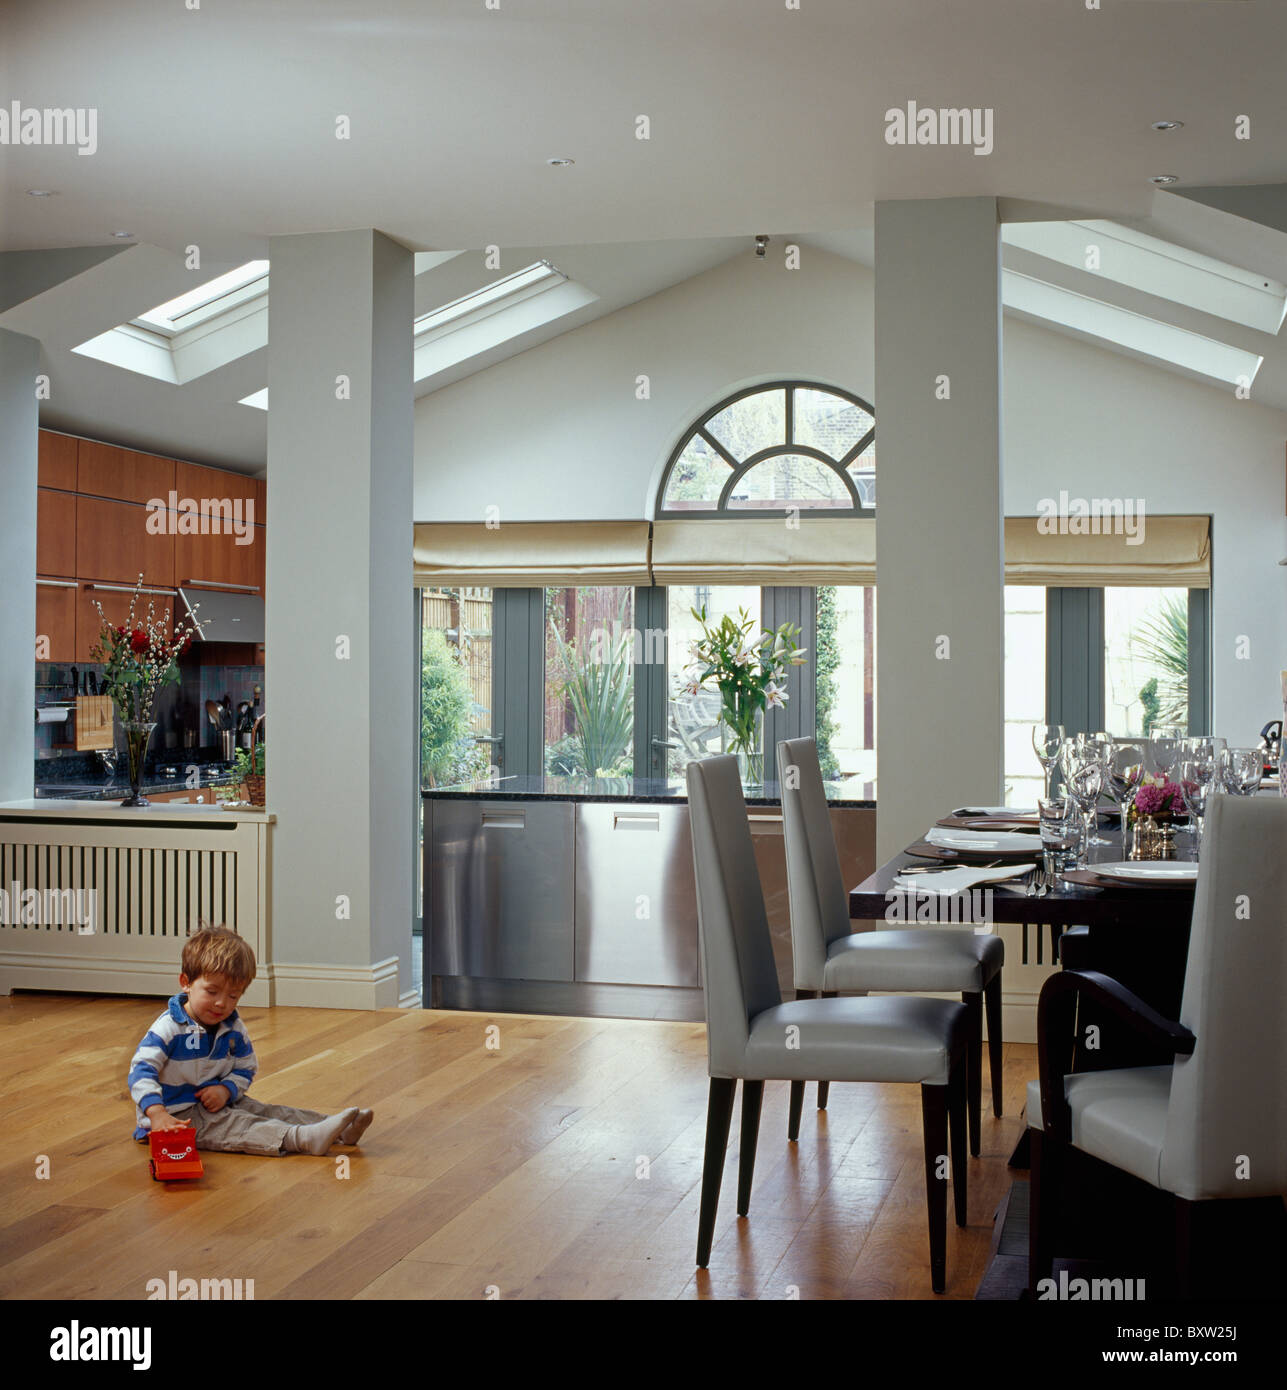 Small Boy Sitting On Wooden Floor Of Modern Kitchen Dining